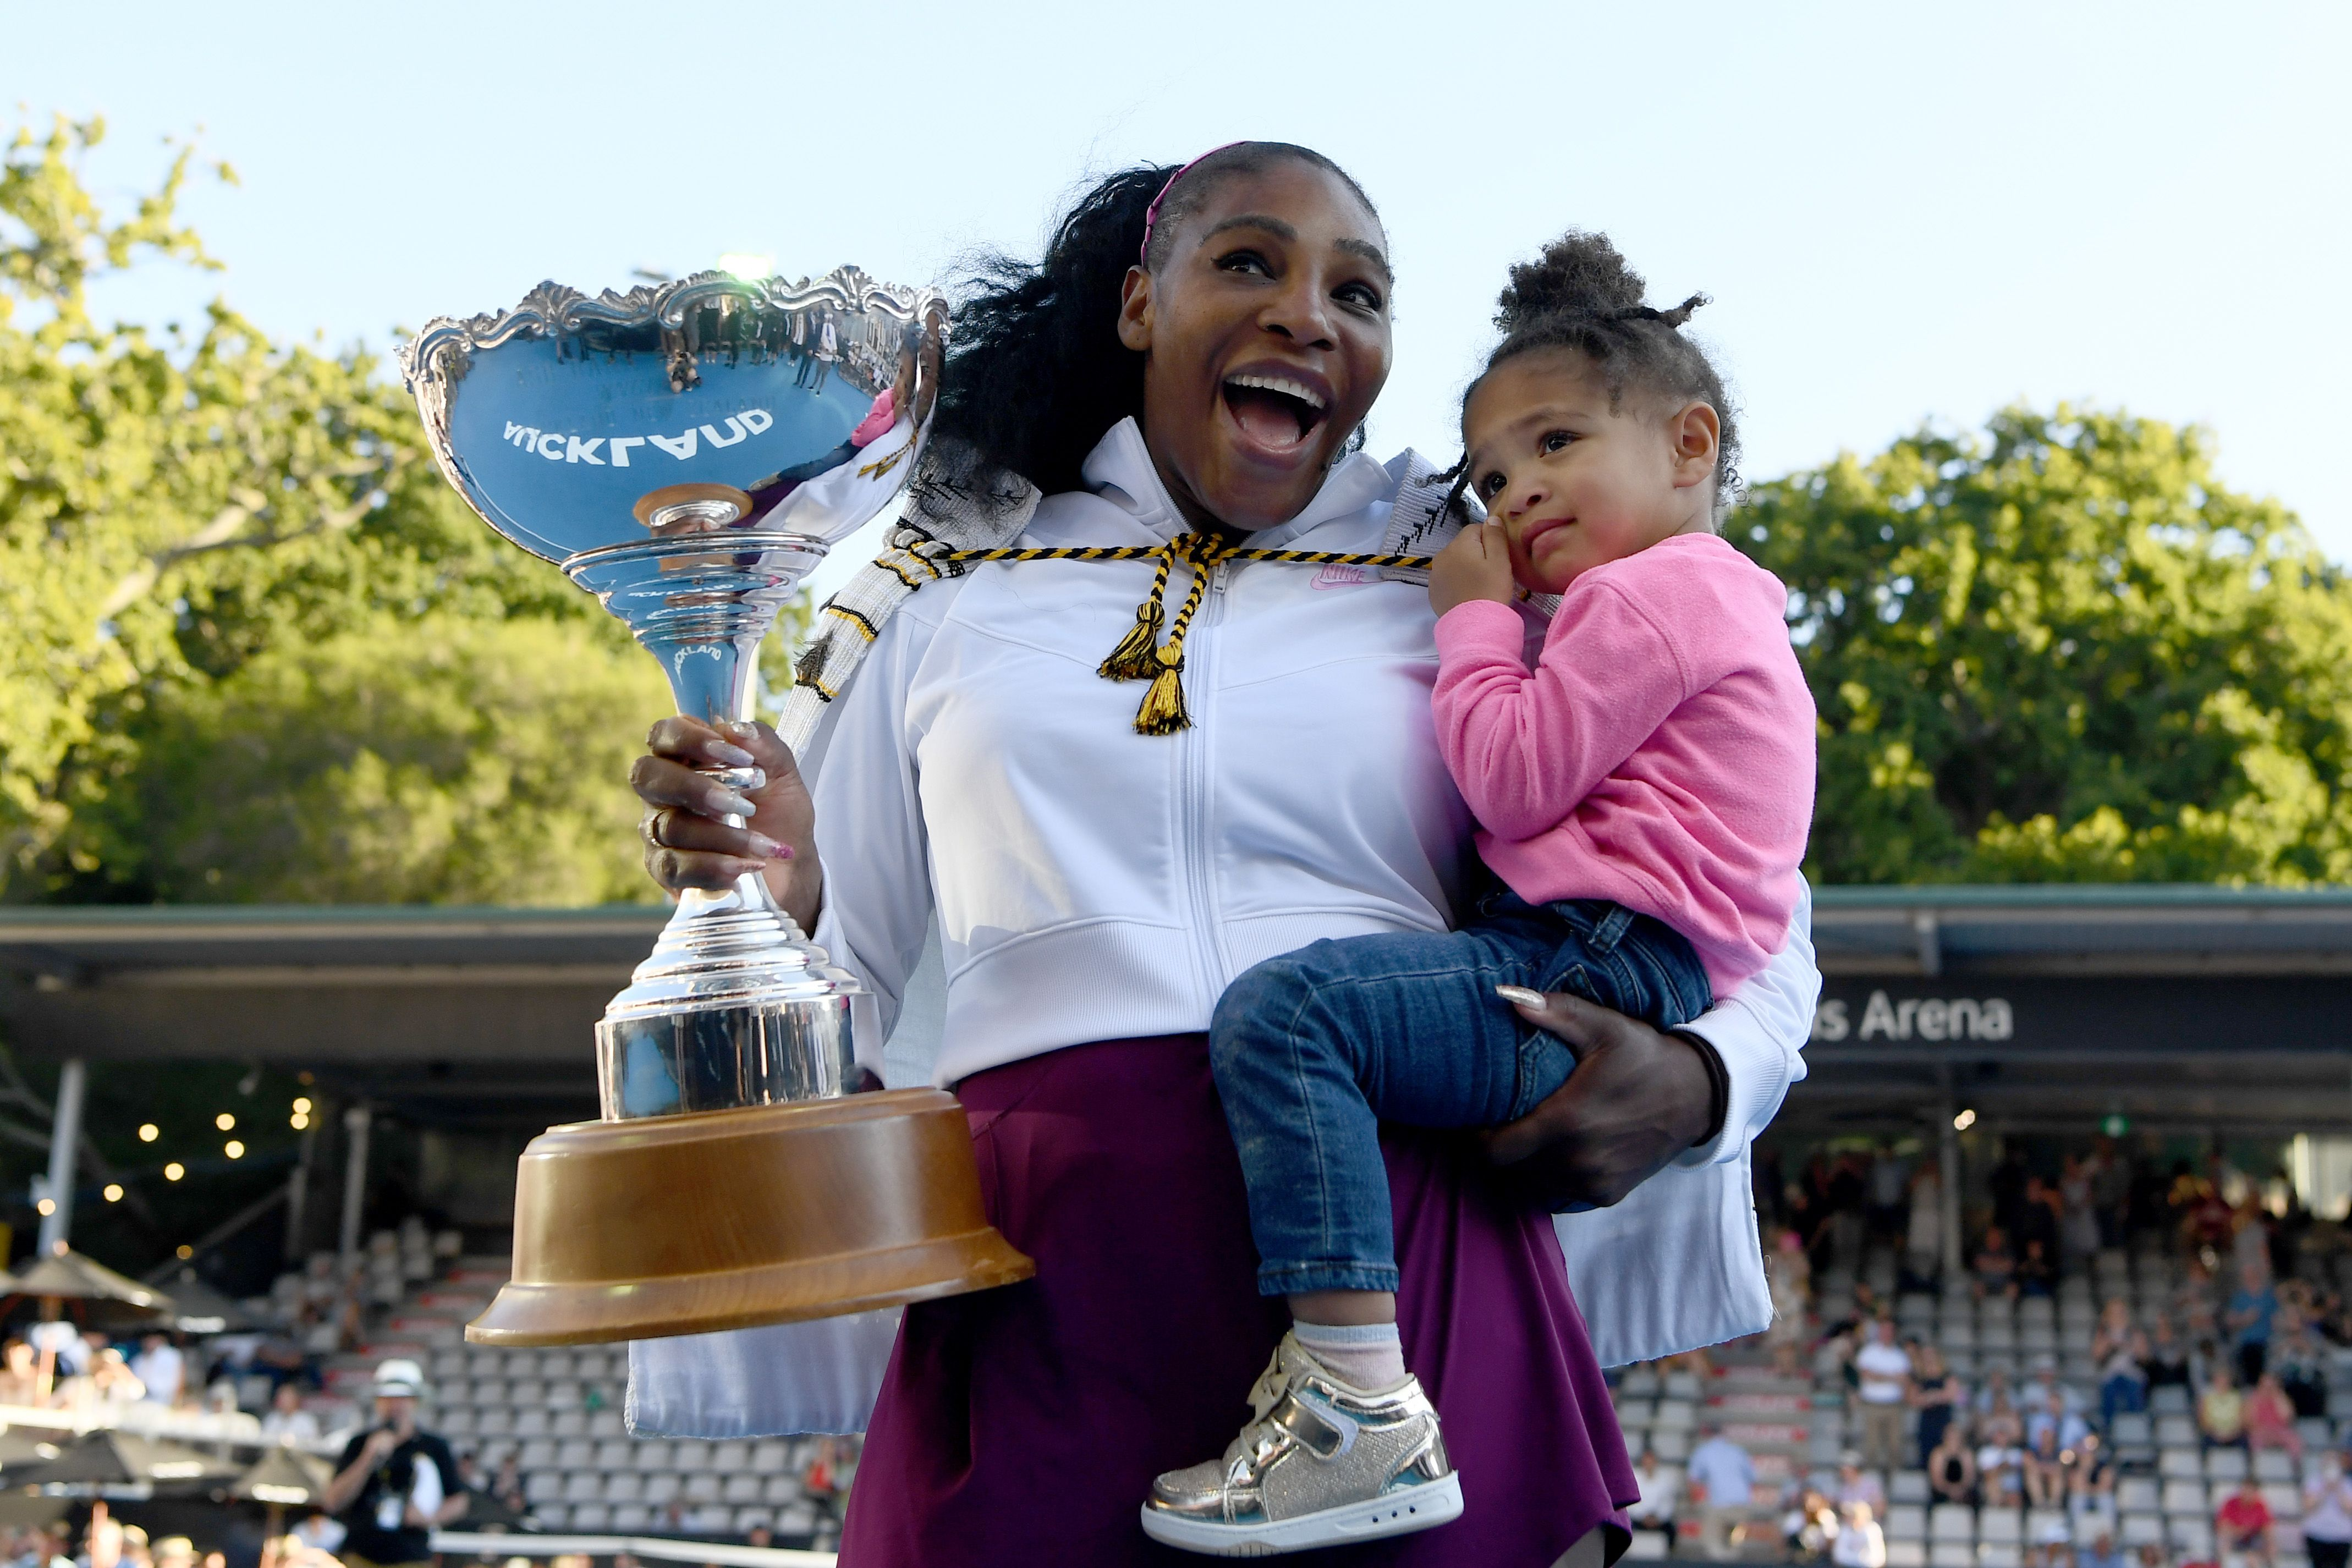 Serena Williams looks incredible with her daughter while holding an award.